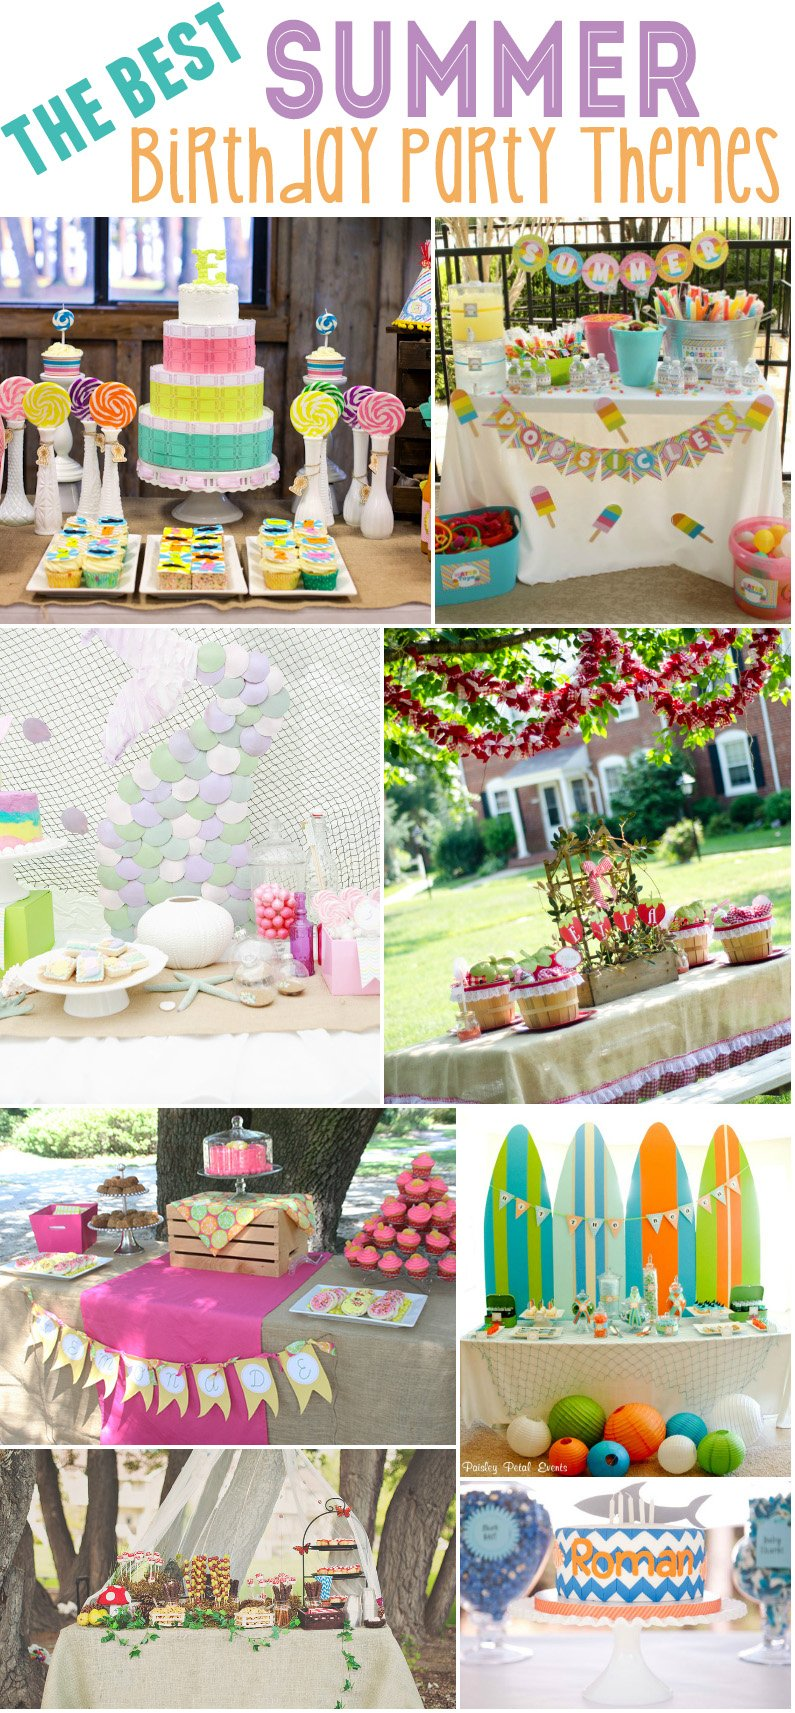 15 Best Summer Birthday Party Themes Design Dazzle